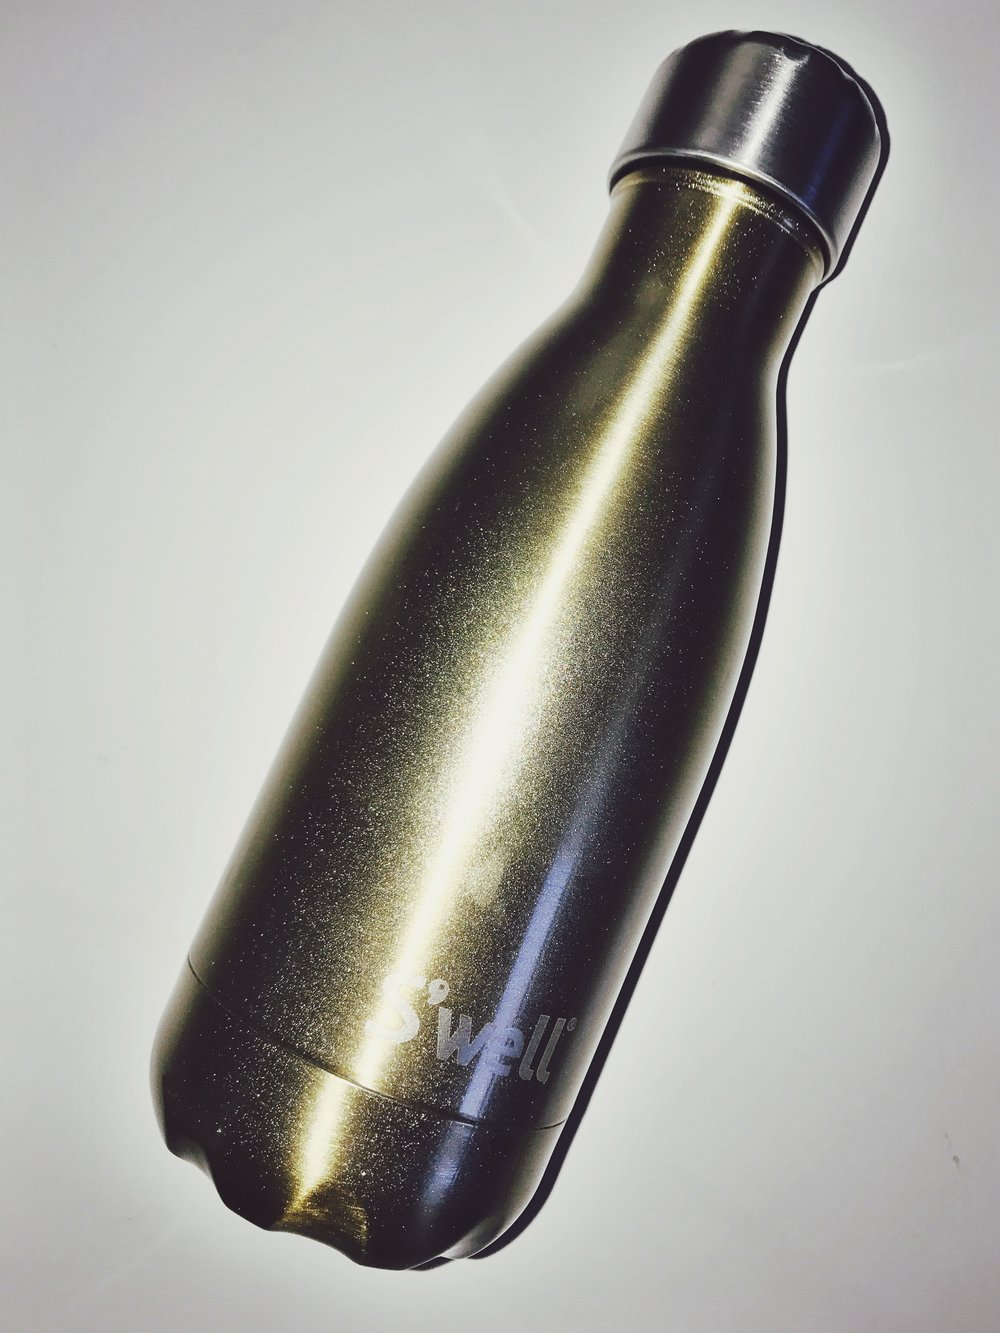 s'well bottle - A signifier of fancy wellness taste! I almost did not buy this because I think carrying around water is idiotic. But then I found out this bottle could keep hot items hot for an extended period of time and I relented. Coffee is very reasonable to carry around, after all.